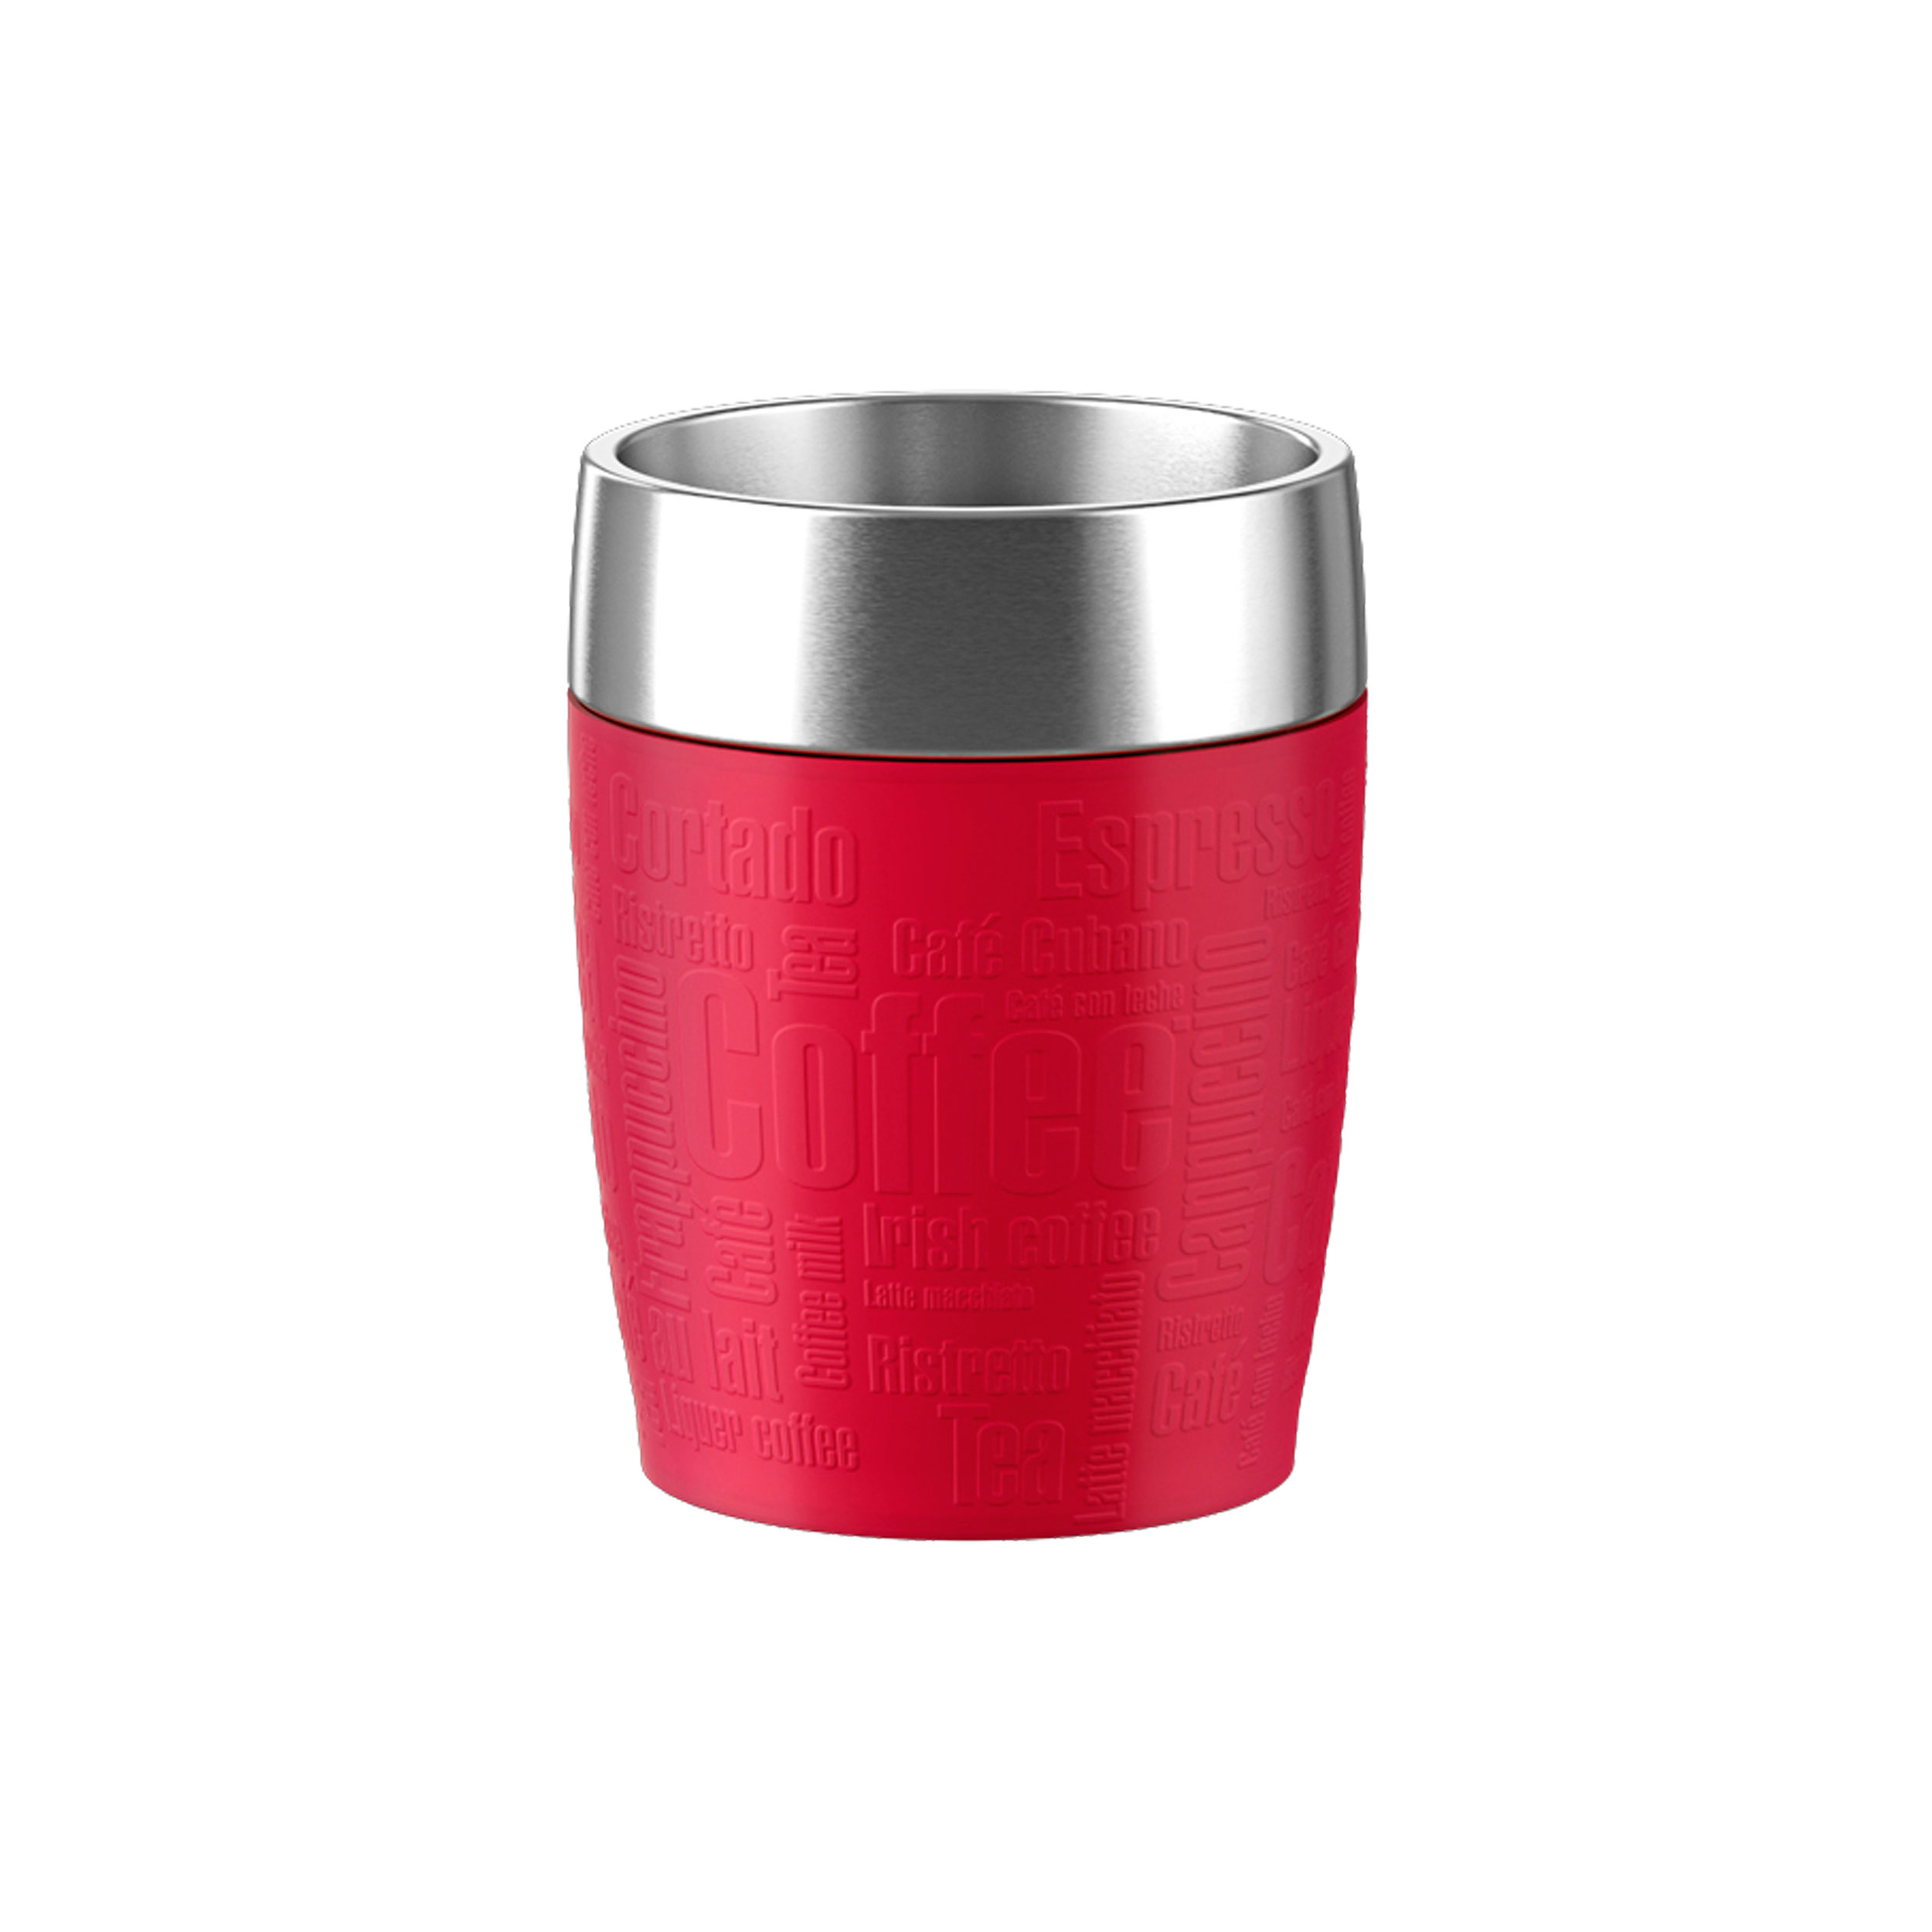 Emsa Travel Cup Vacuum Flask Travel Mug Insulated Mug Stainless Steel Plastic Silicone Rubber Red 200 Ml 515681 At About Tea De Shop